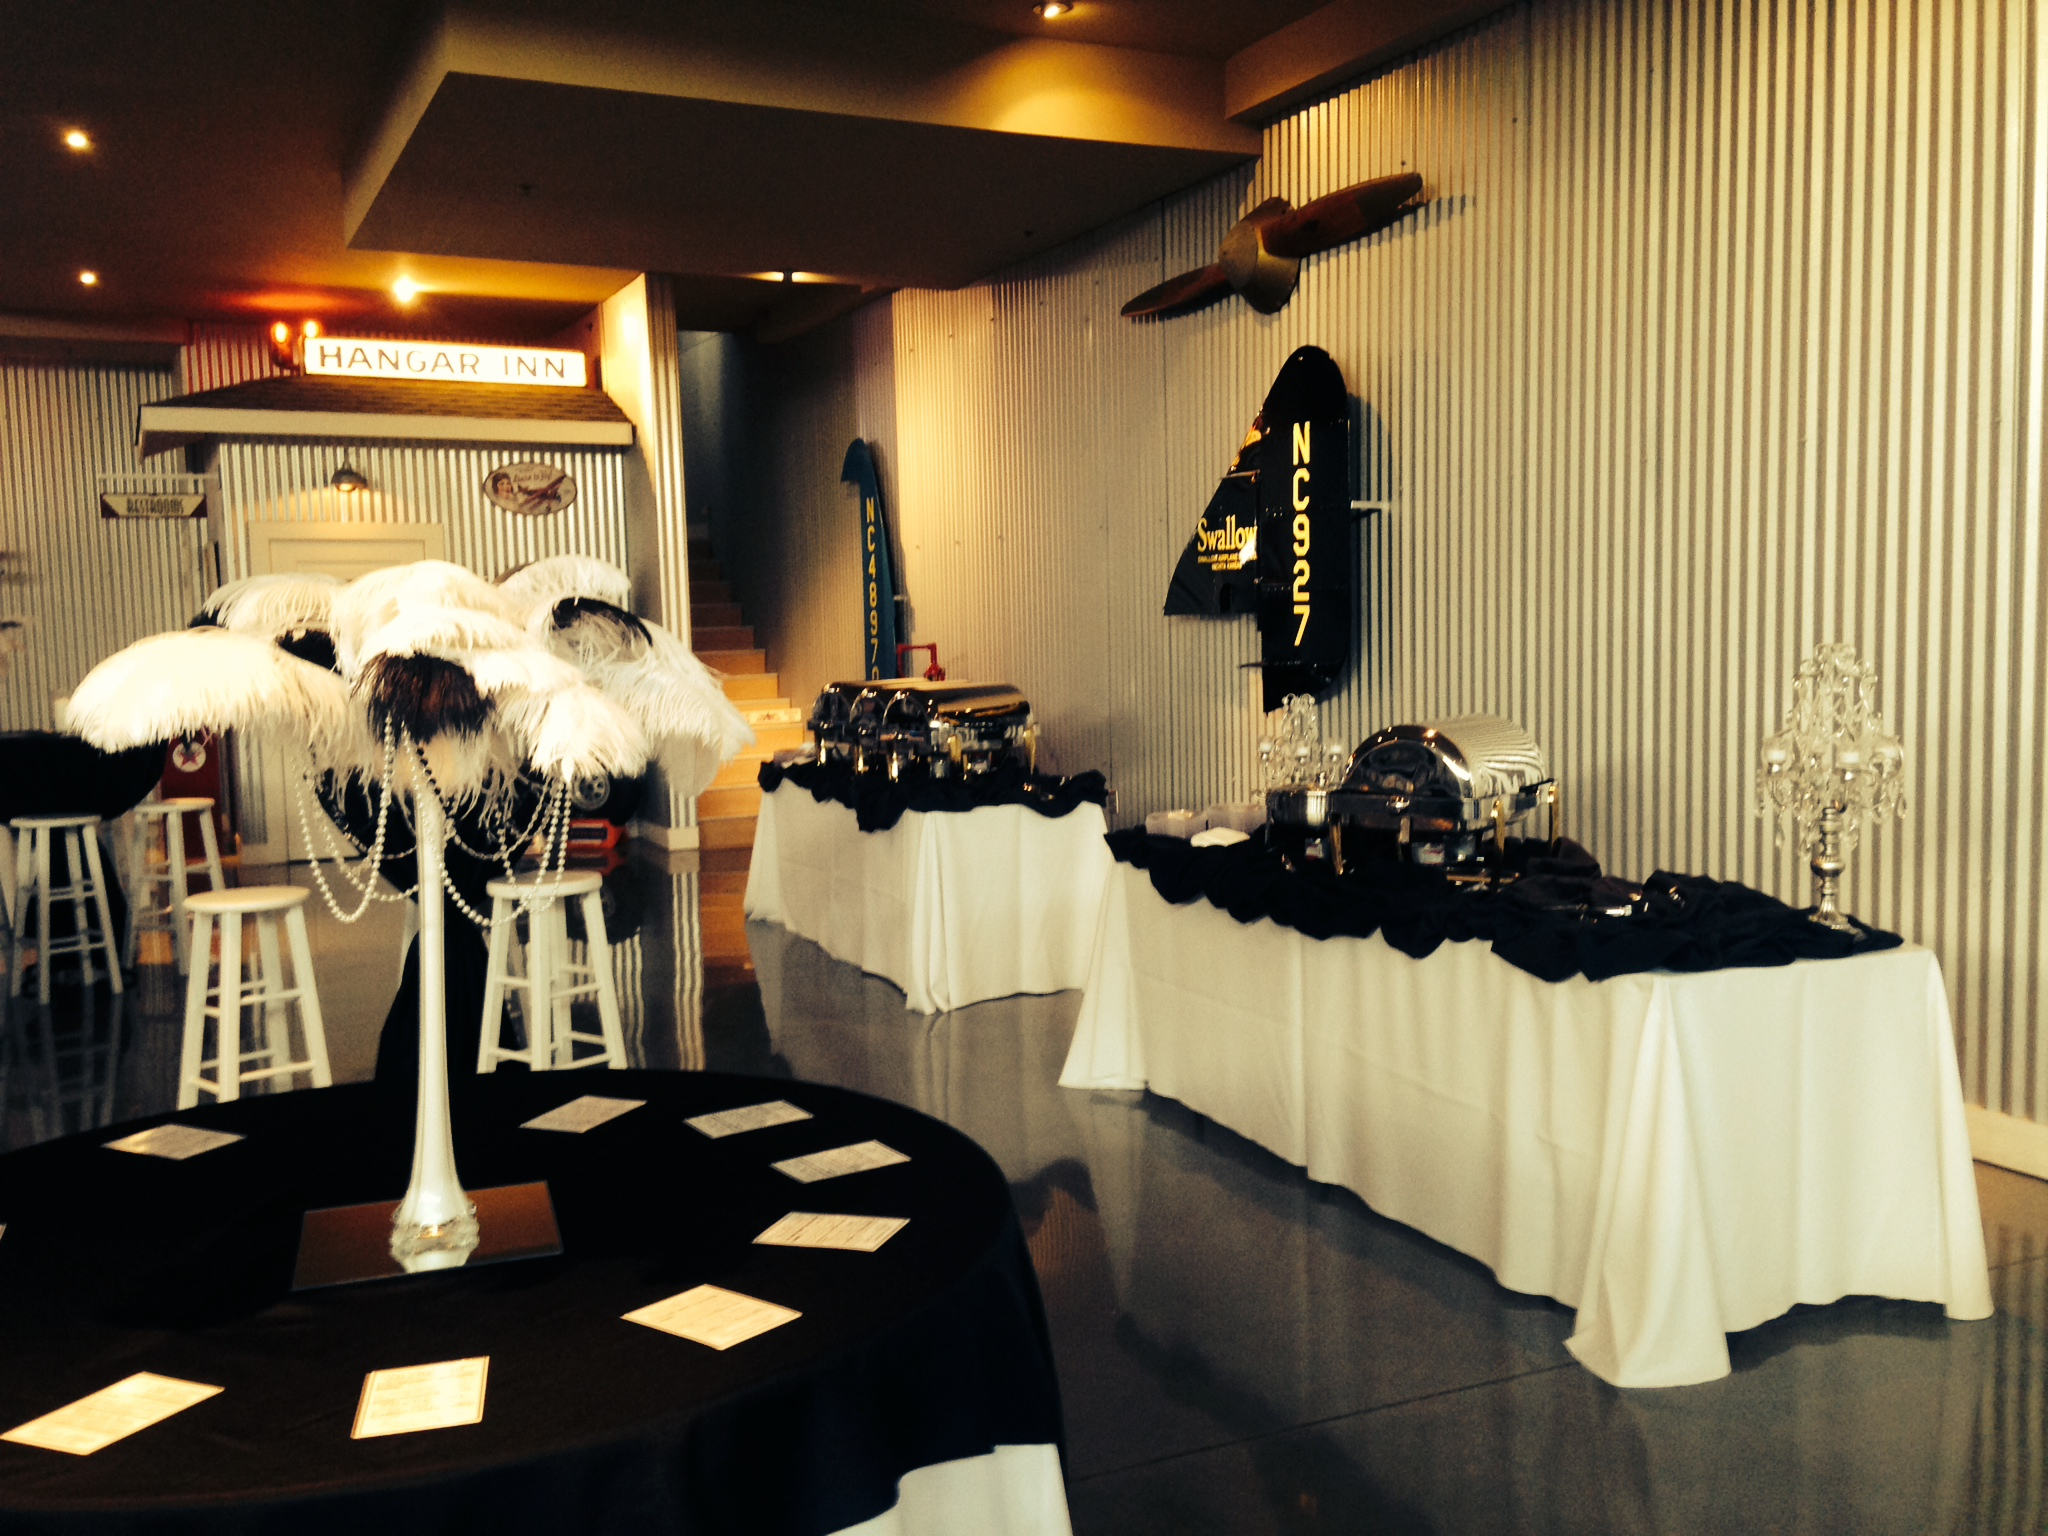 A room with white table cloths covered by black table clothes and a centerpiece of black and white feathers